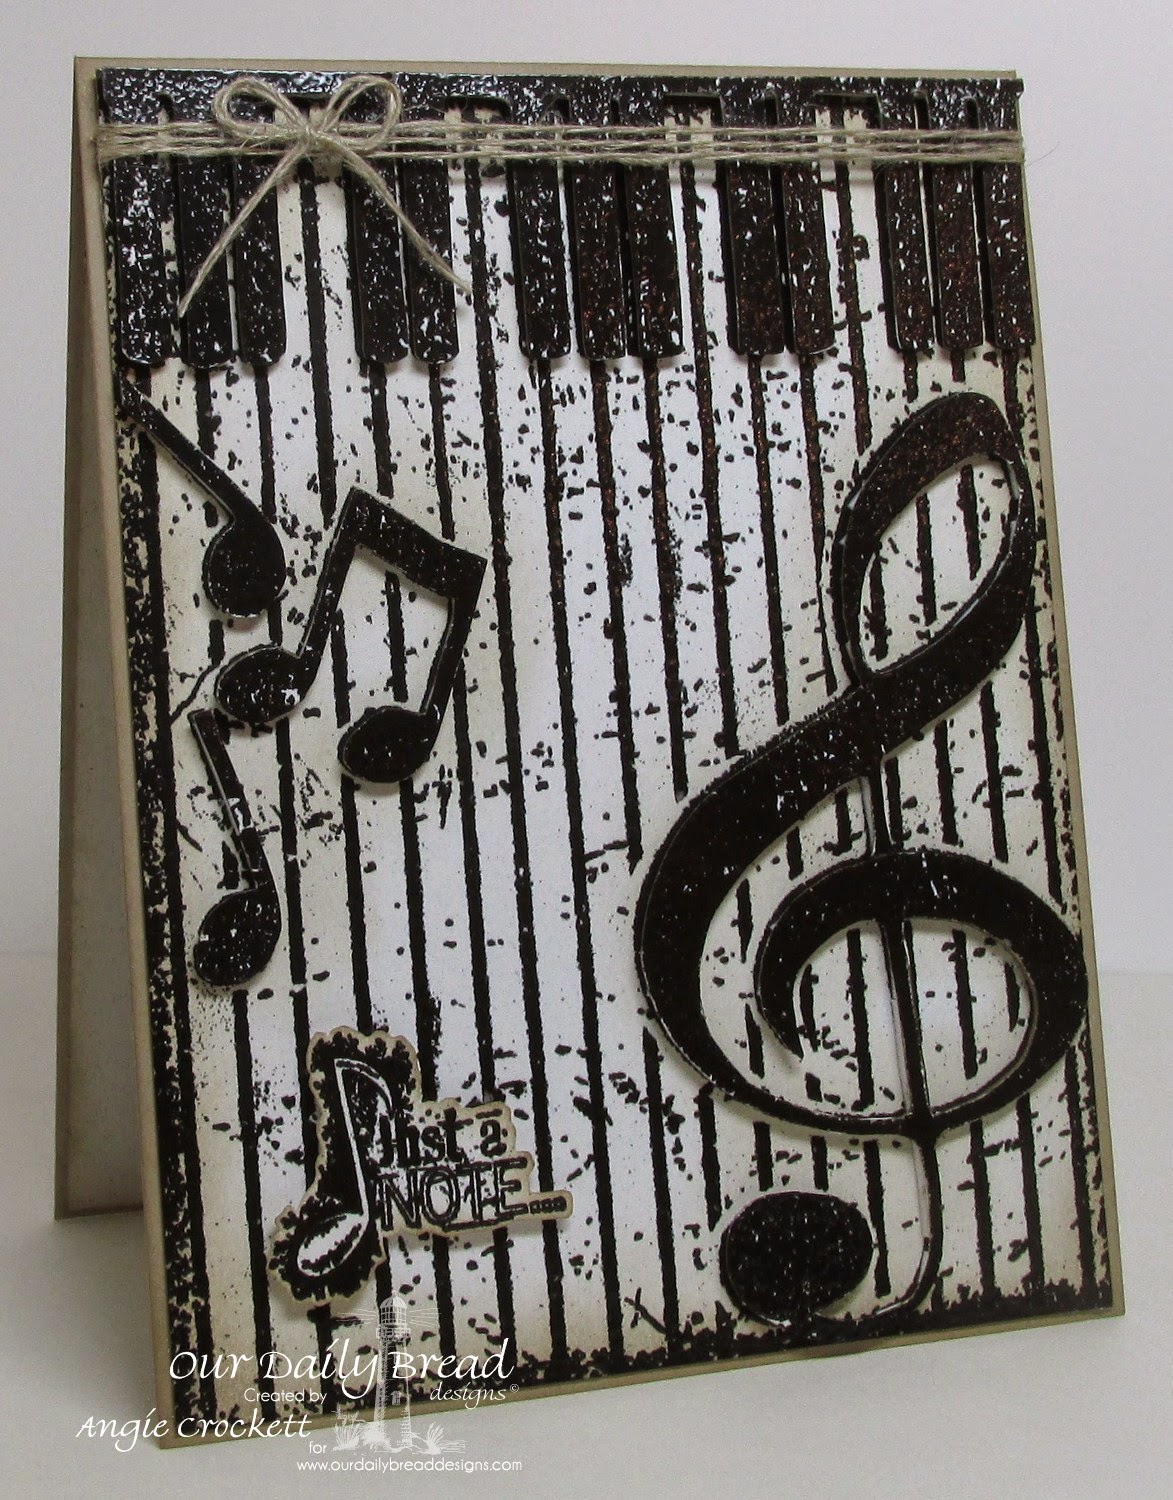 ODBD Grunge Piano Background, ODBD Sing Thy Grace, Card Designer Angie Crockett